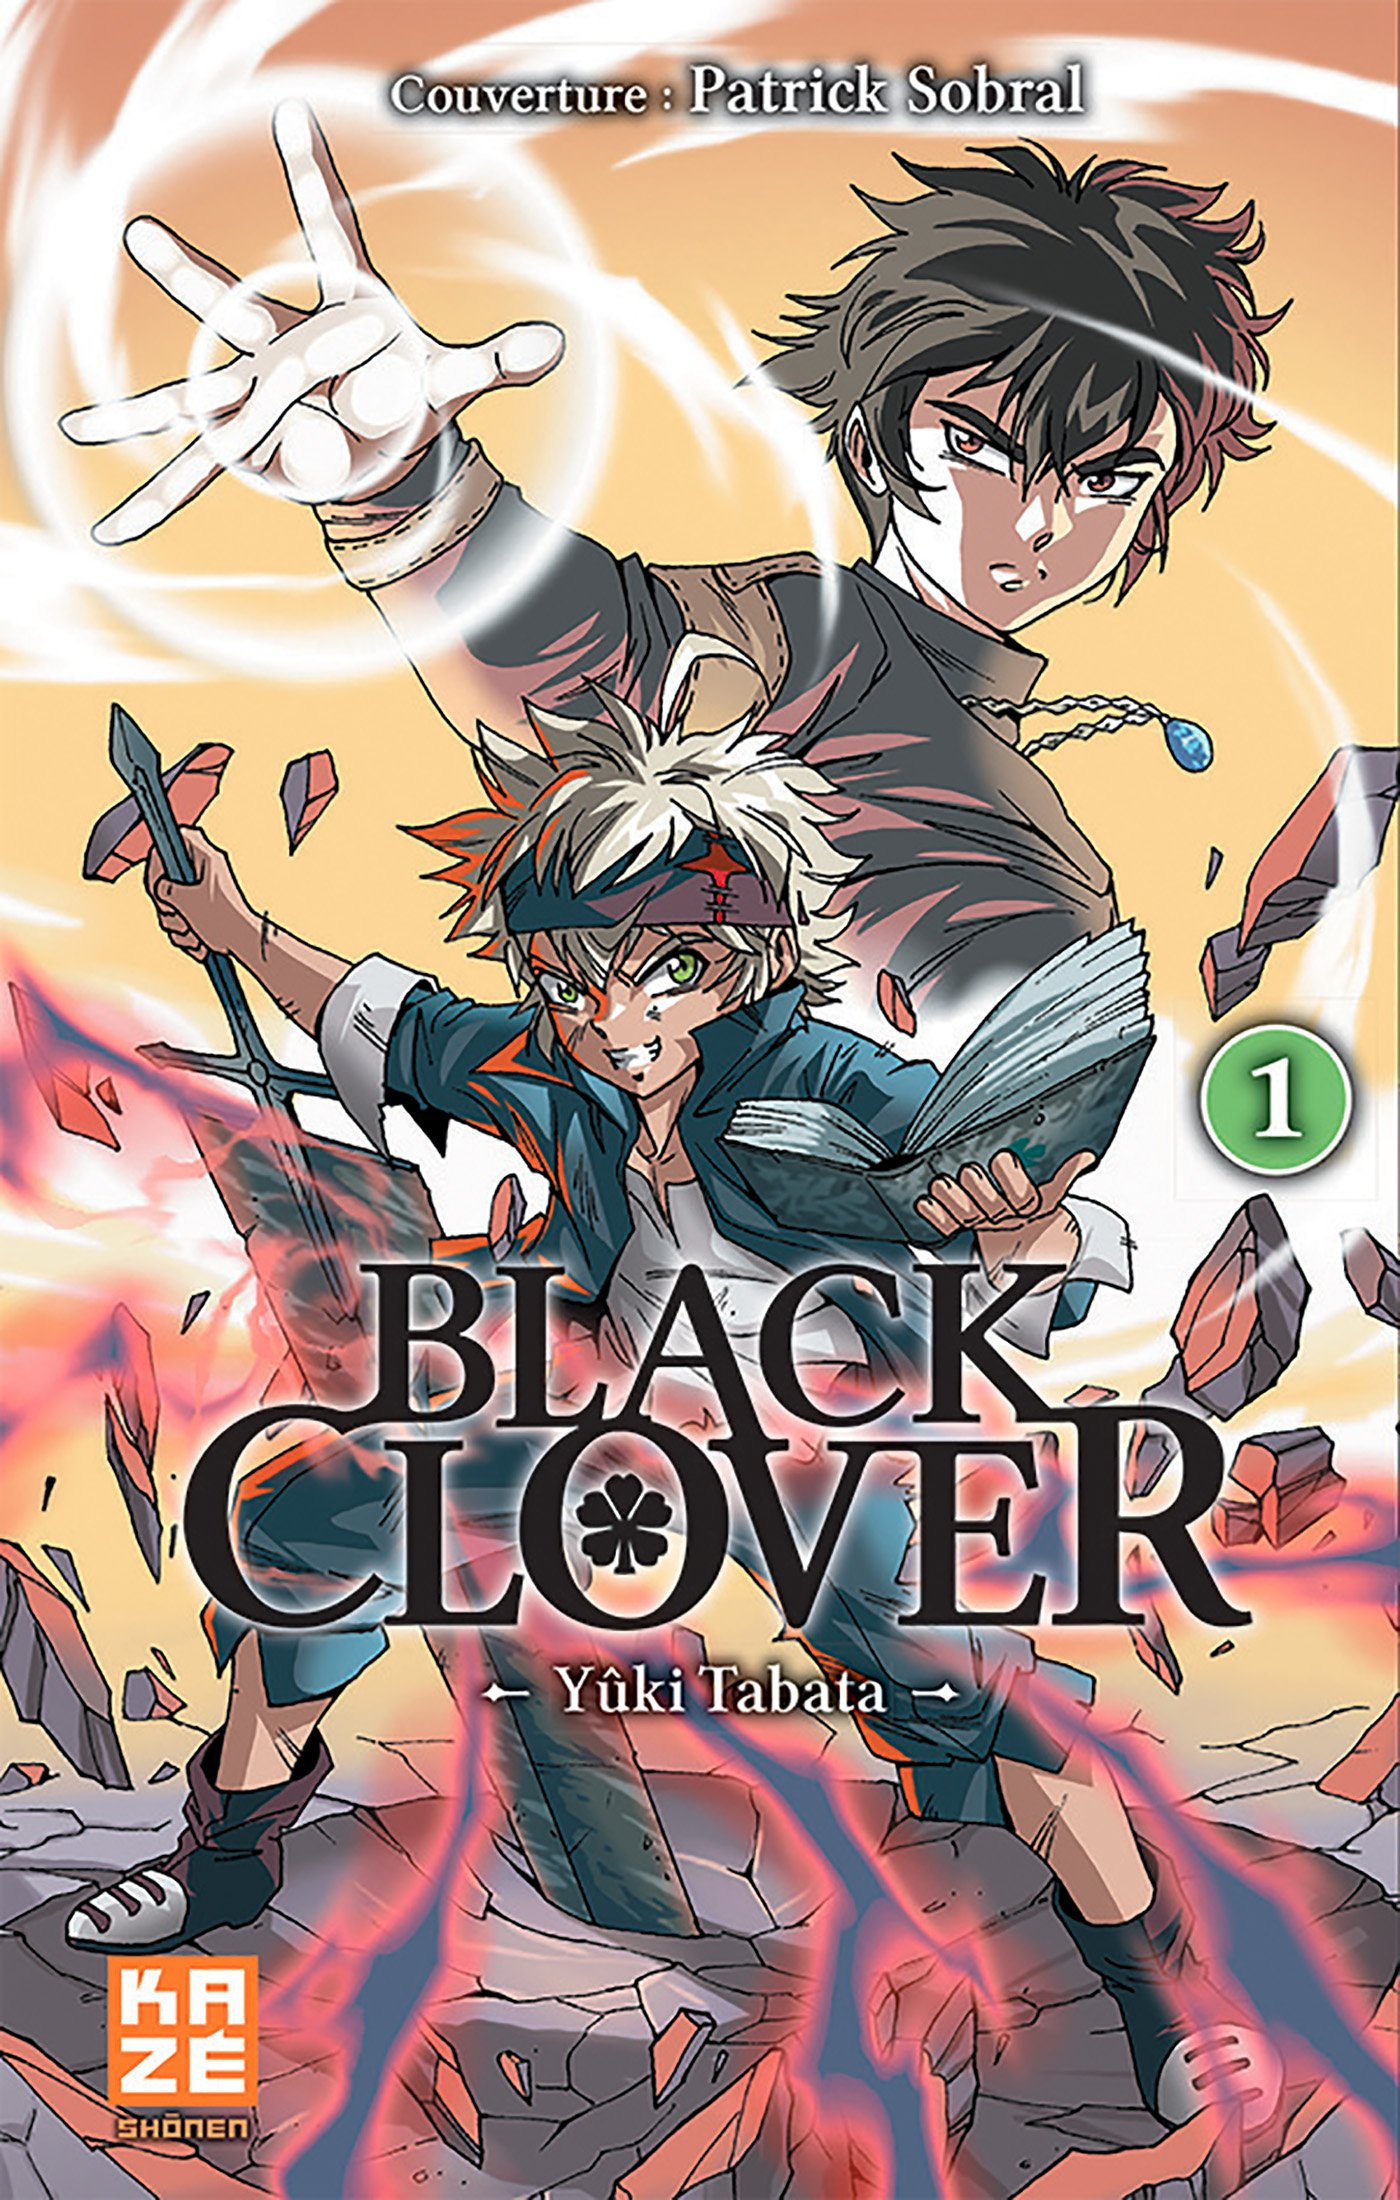 Black Clover Tome 1 Variant Cover (VF)